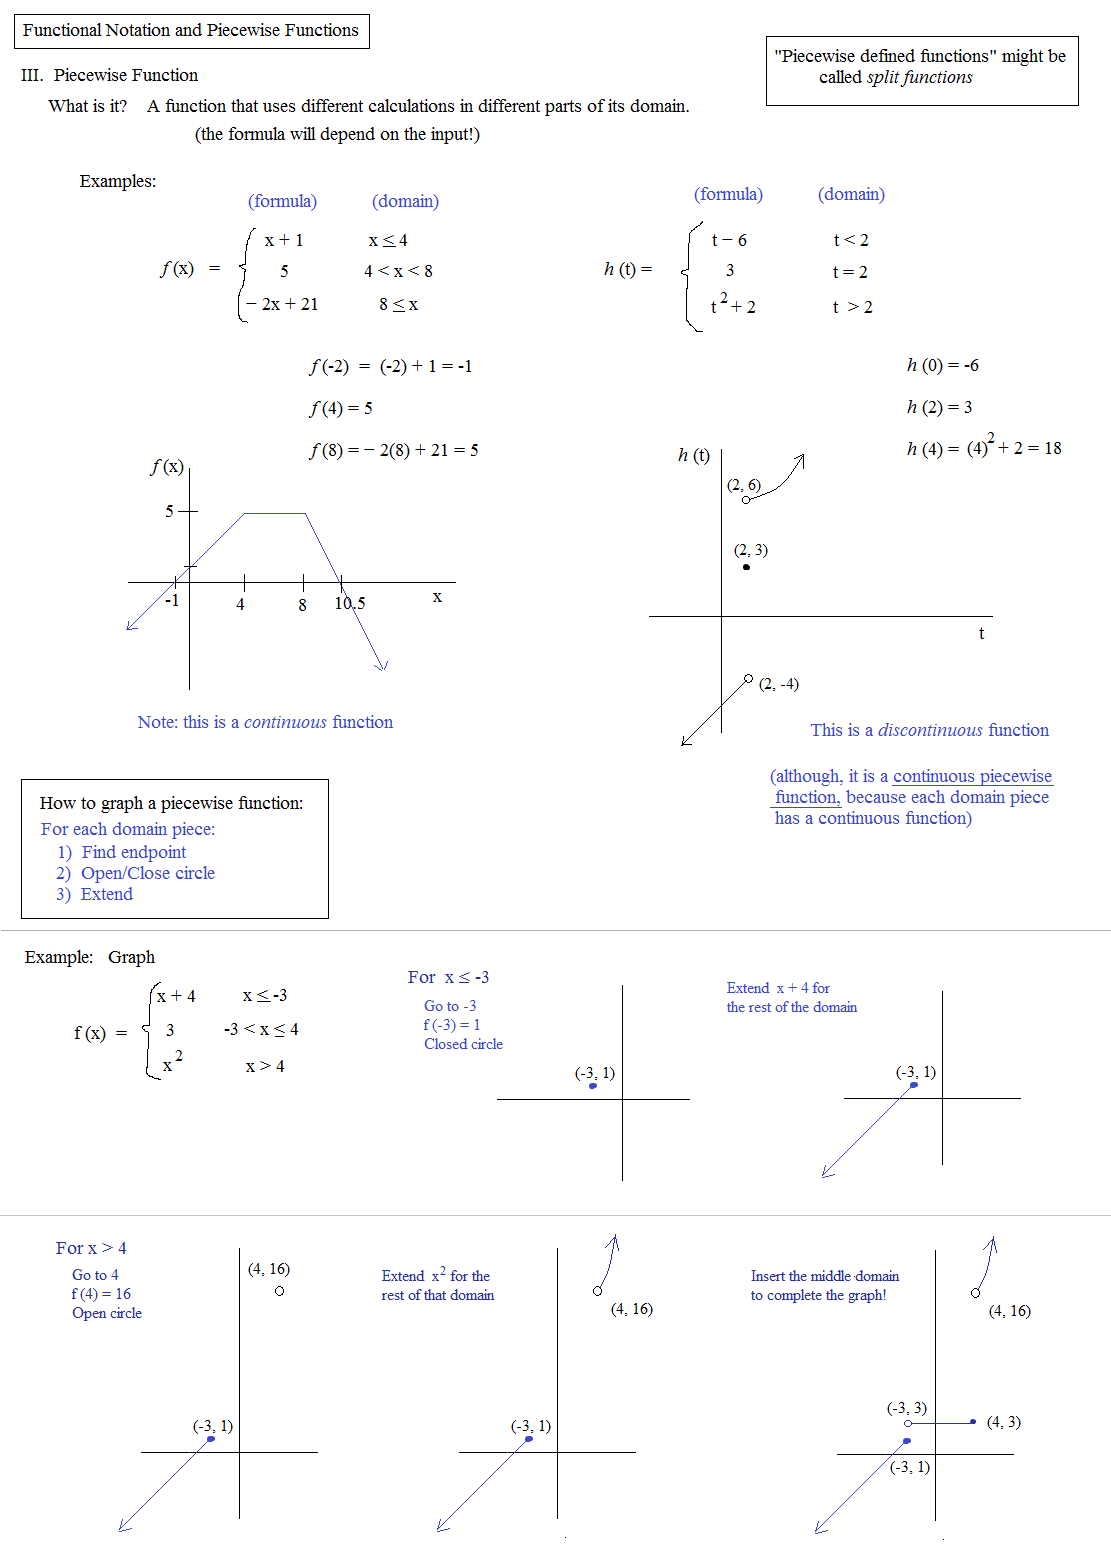 31 44 Graphing Piecewise Functions Worksheet Answers